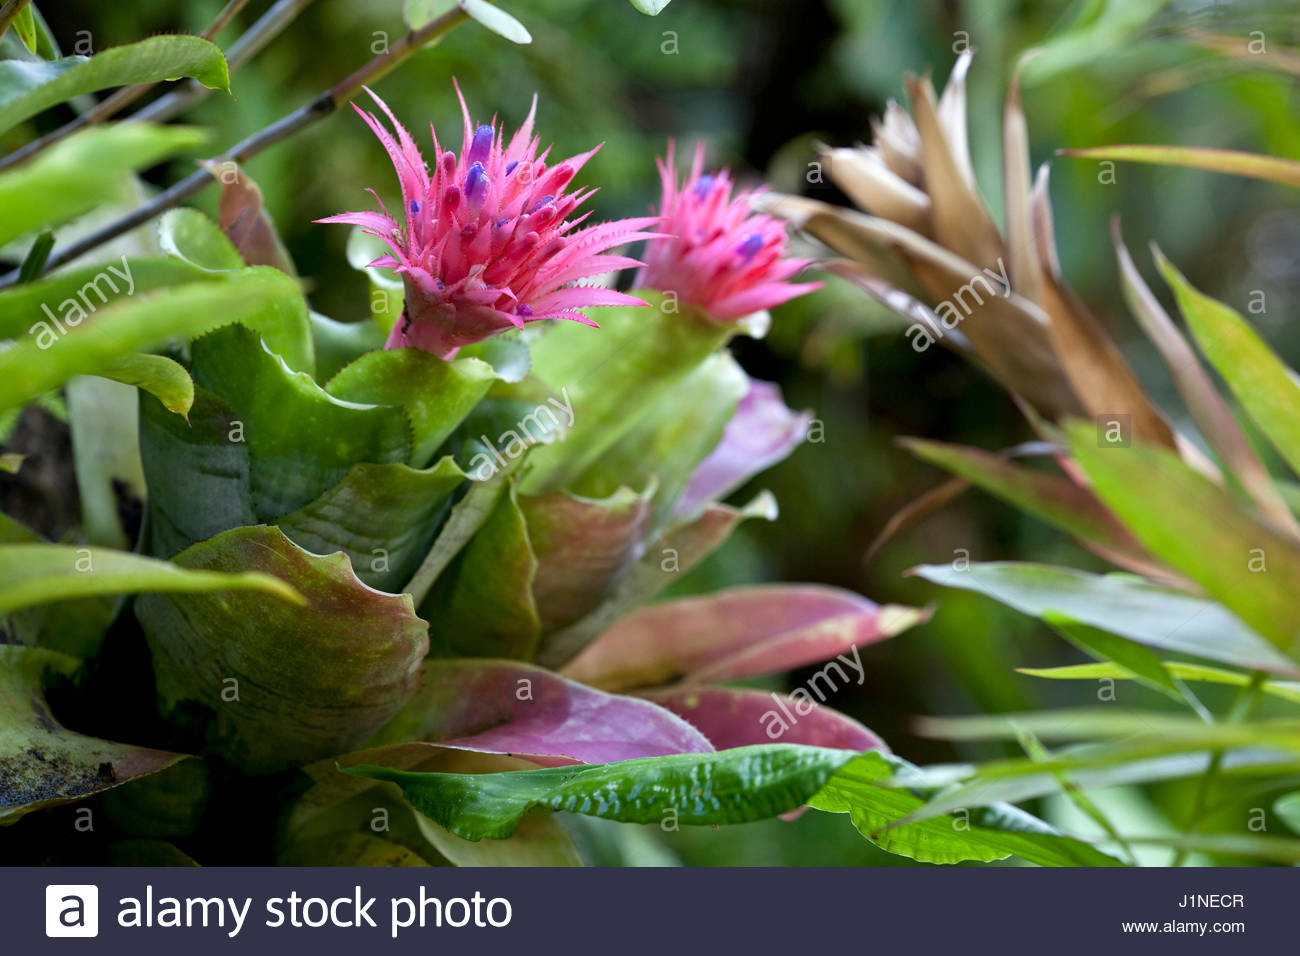 Aechmea stock photos aechmea stock images alamy for Aechmea fasciata